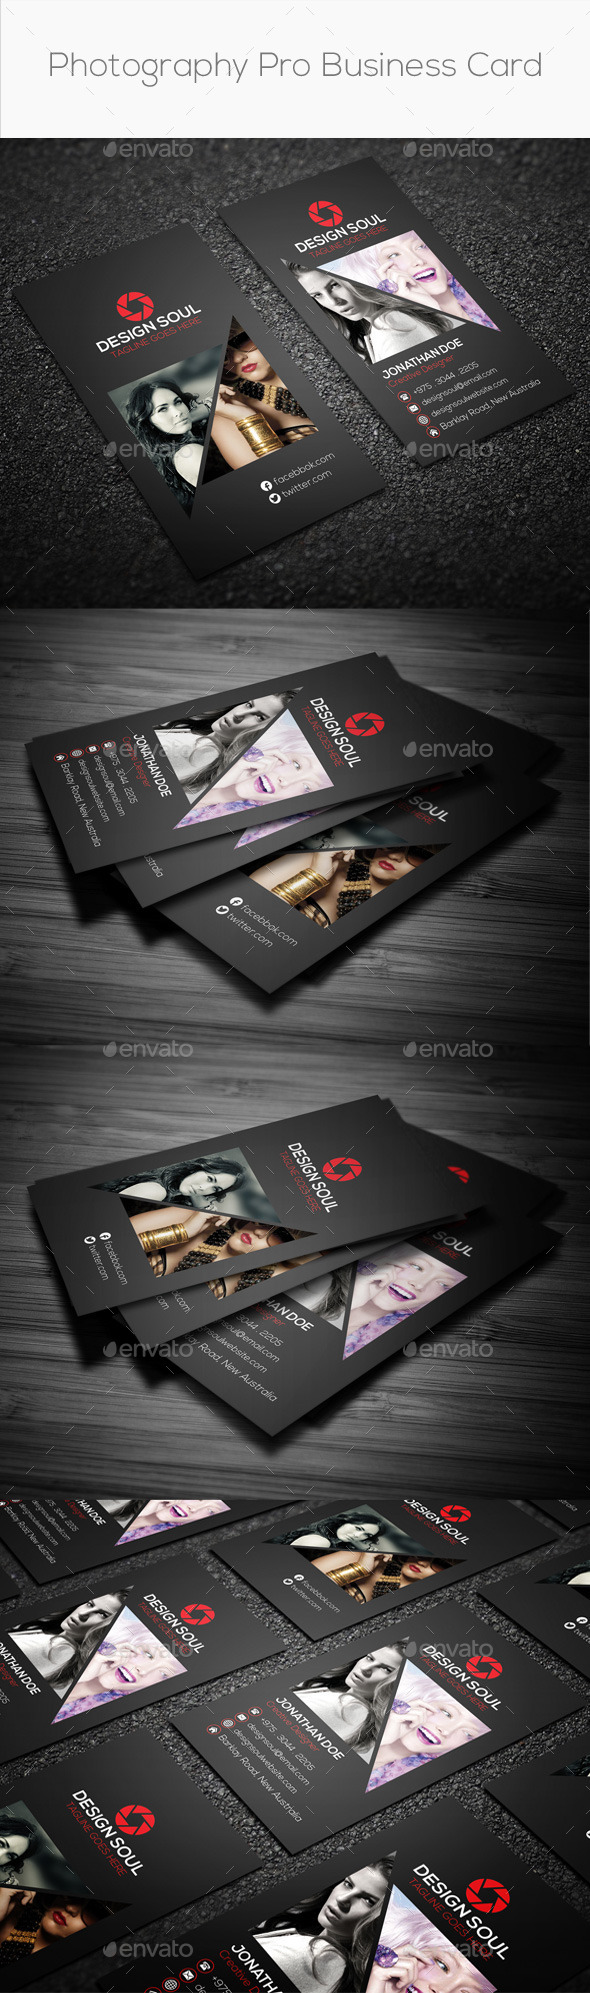 Photography Pro Business Card - Creative Business Cards